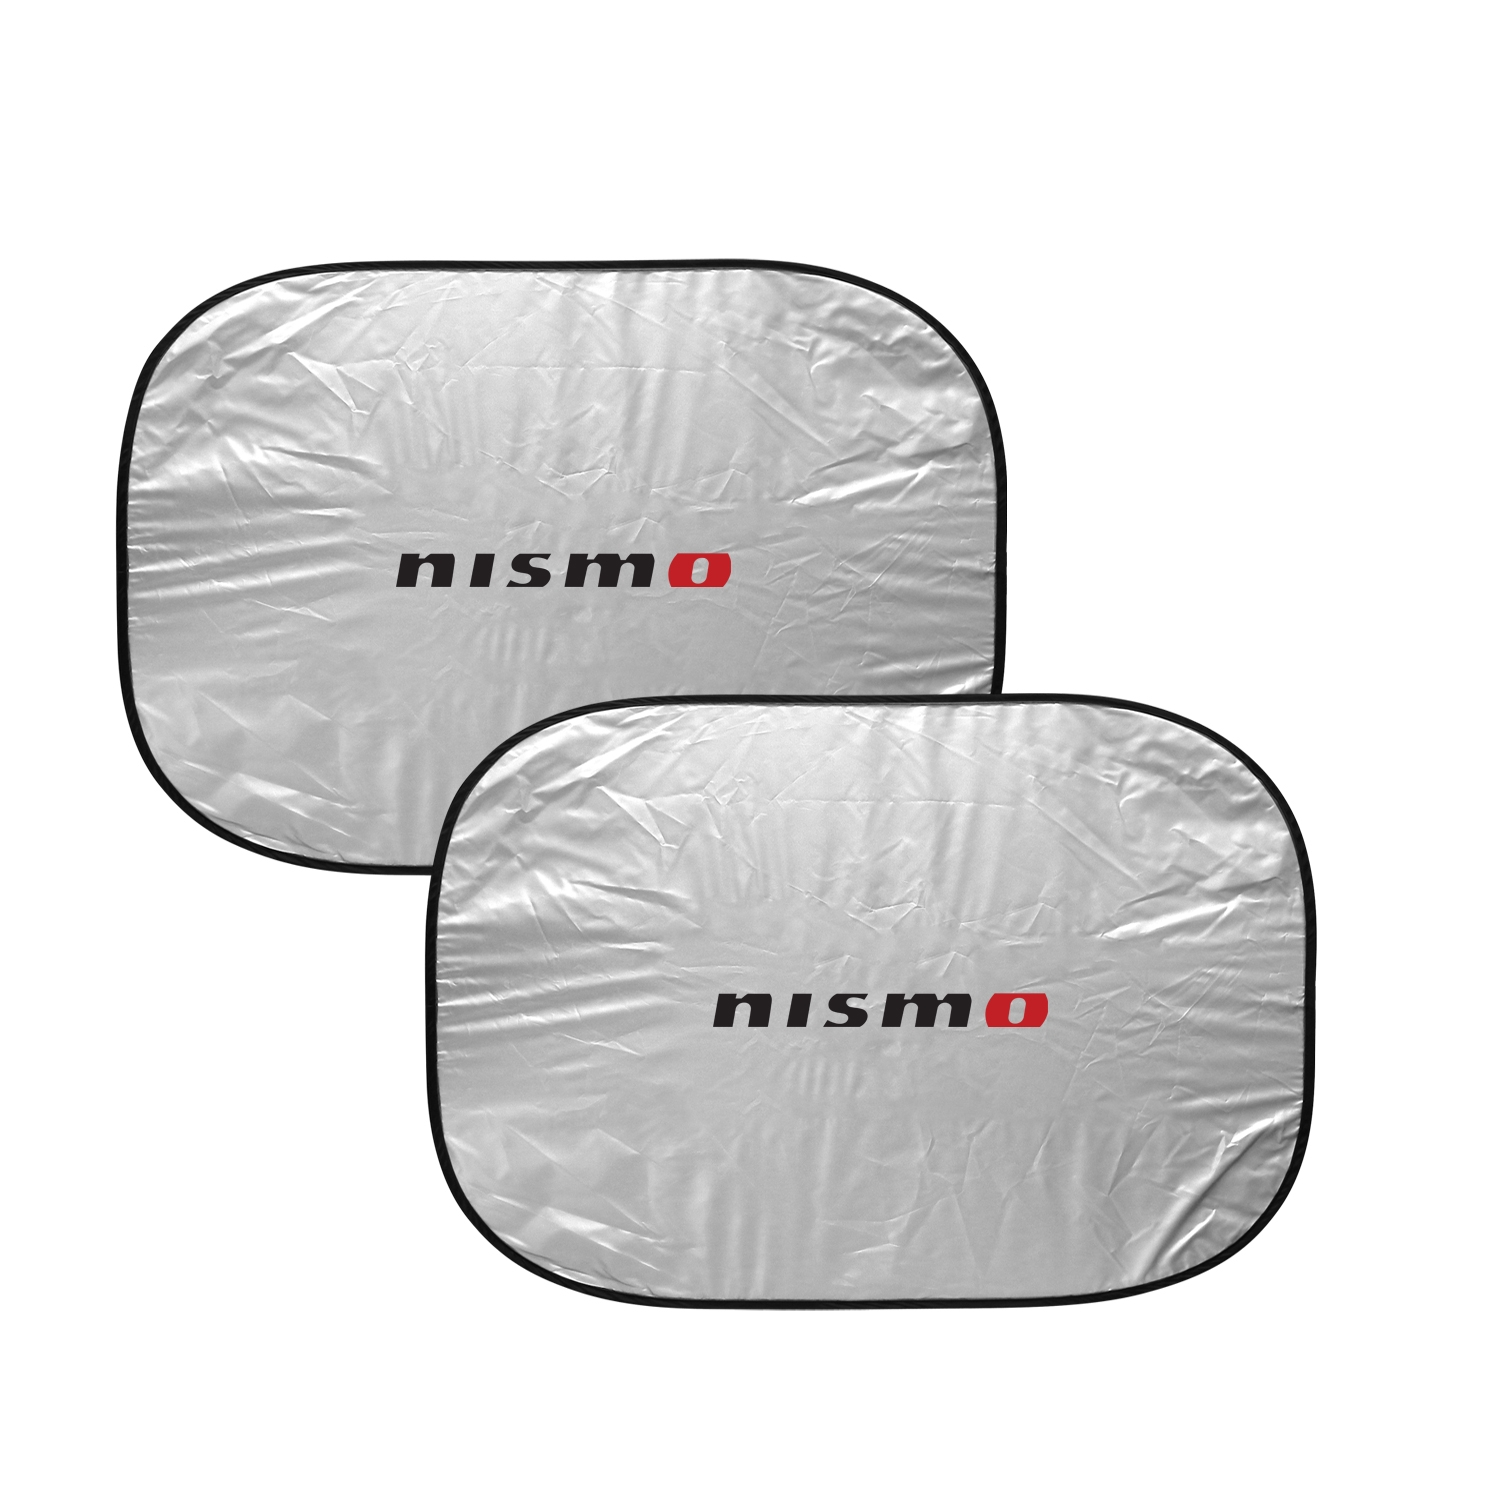 Nissan NISMO Dual Panels Easy Folding Windshield Sun Shade for Cars and Small SUVs